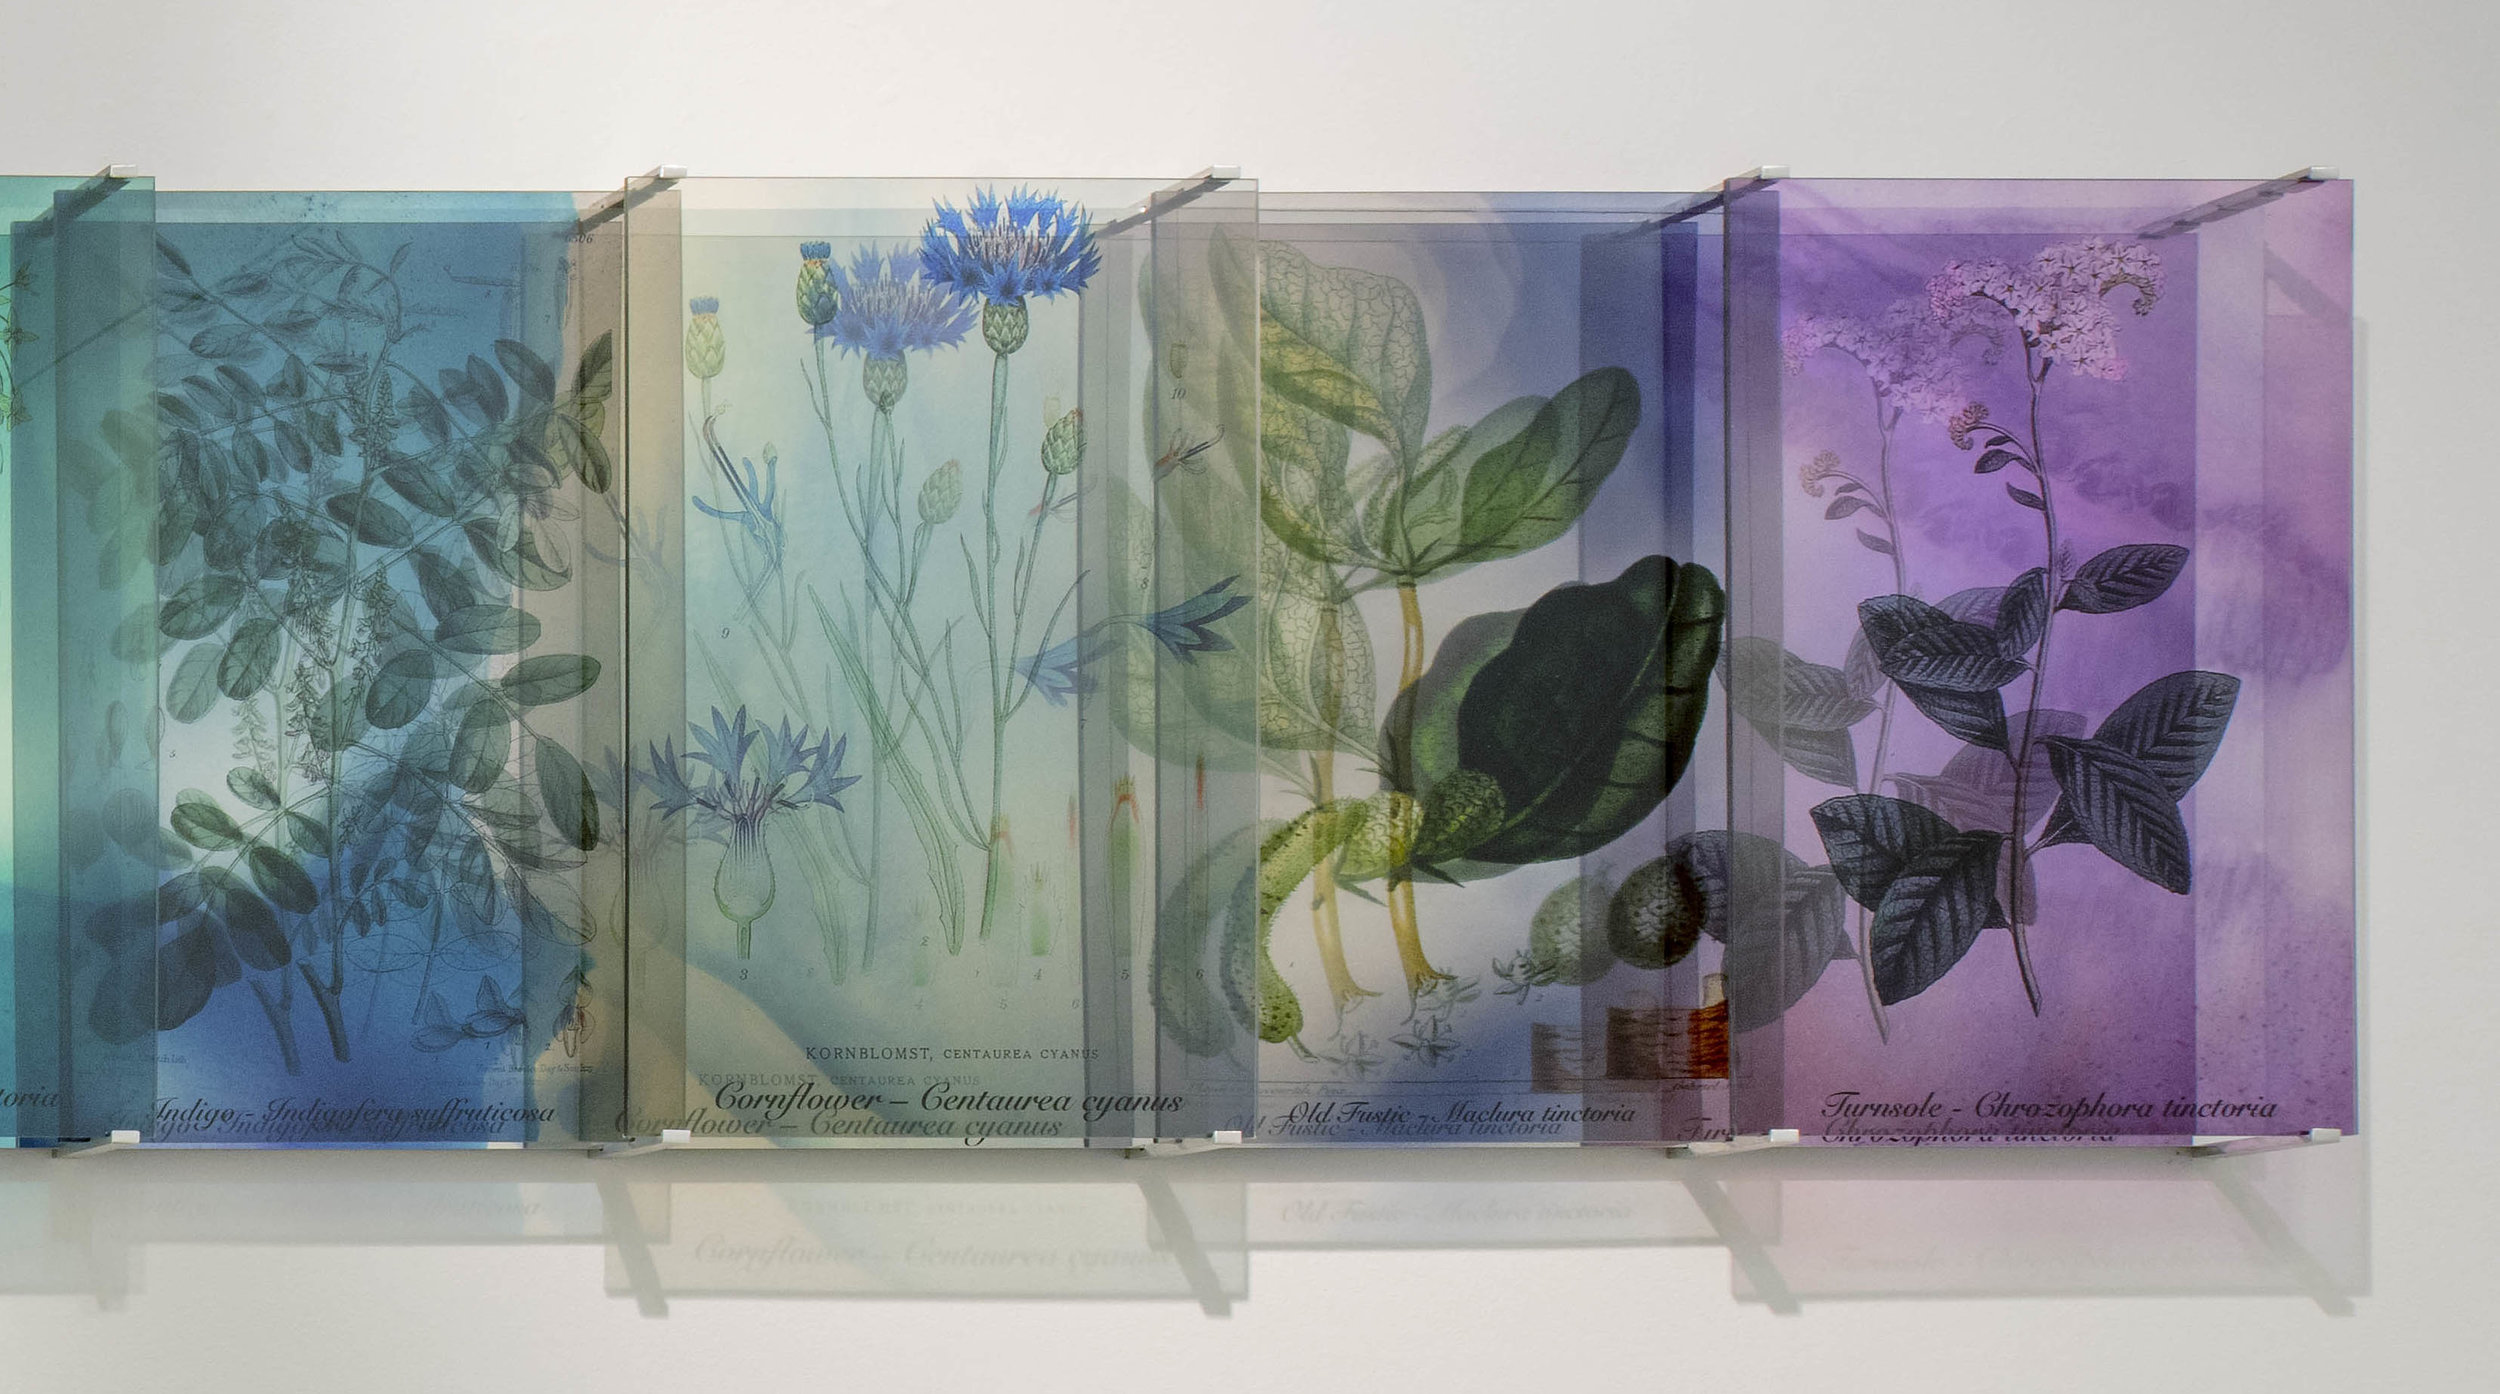 JANET LAURENCE   Plants Bleed Lakes,  panels 10 - 13 2018 Dibond mirror, duraclear mounted on acrylic 60 x 144 cm Part of a series of 3